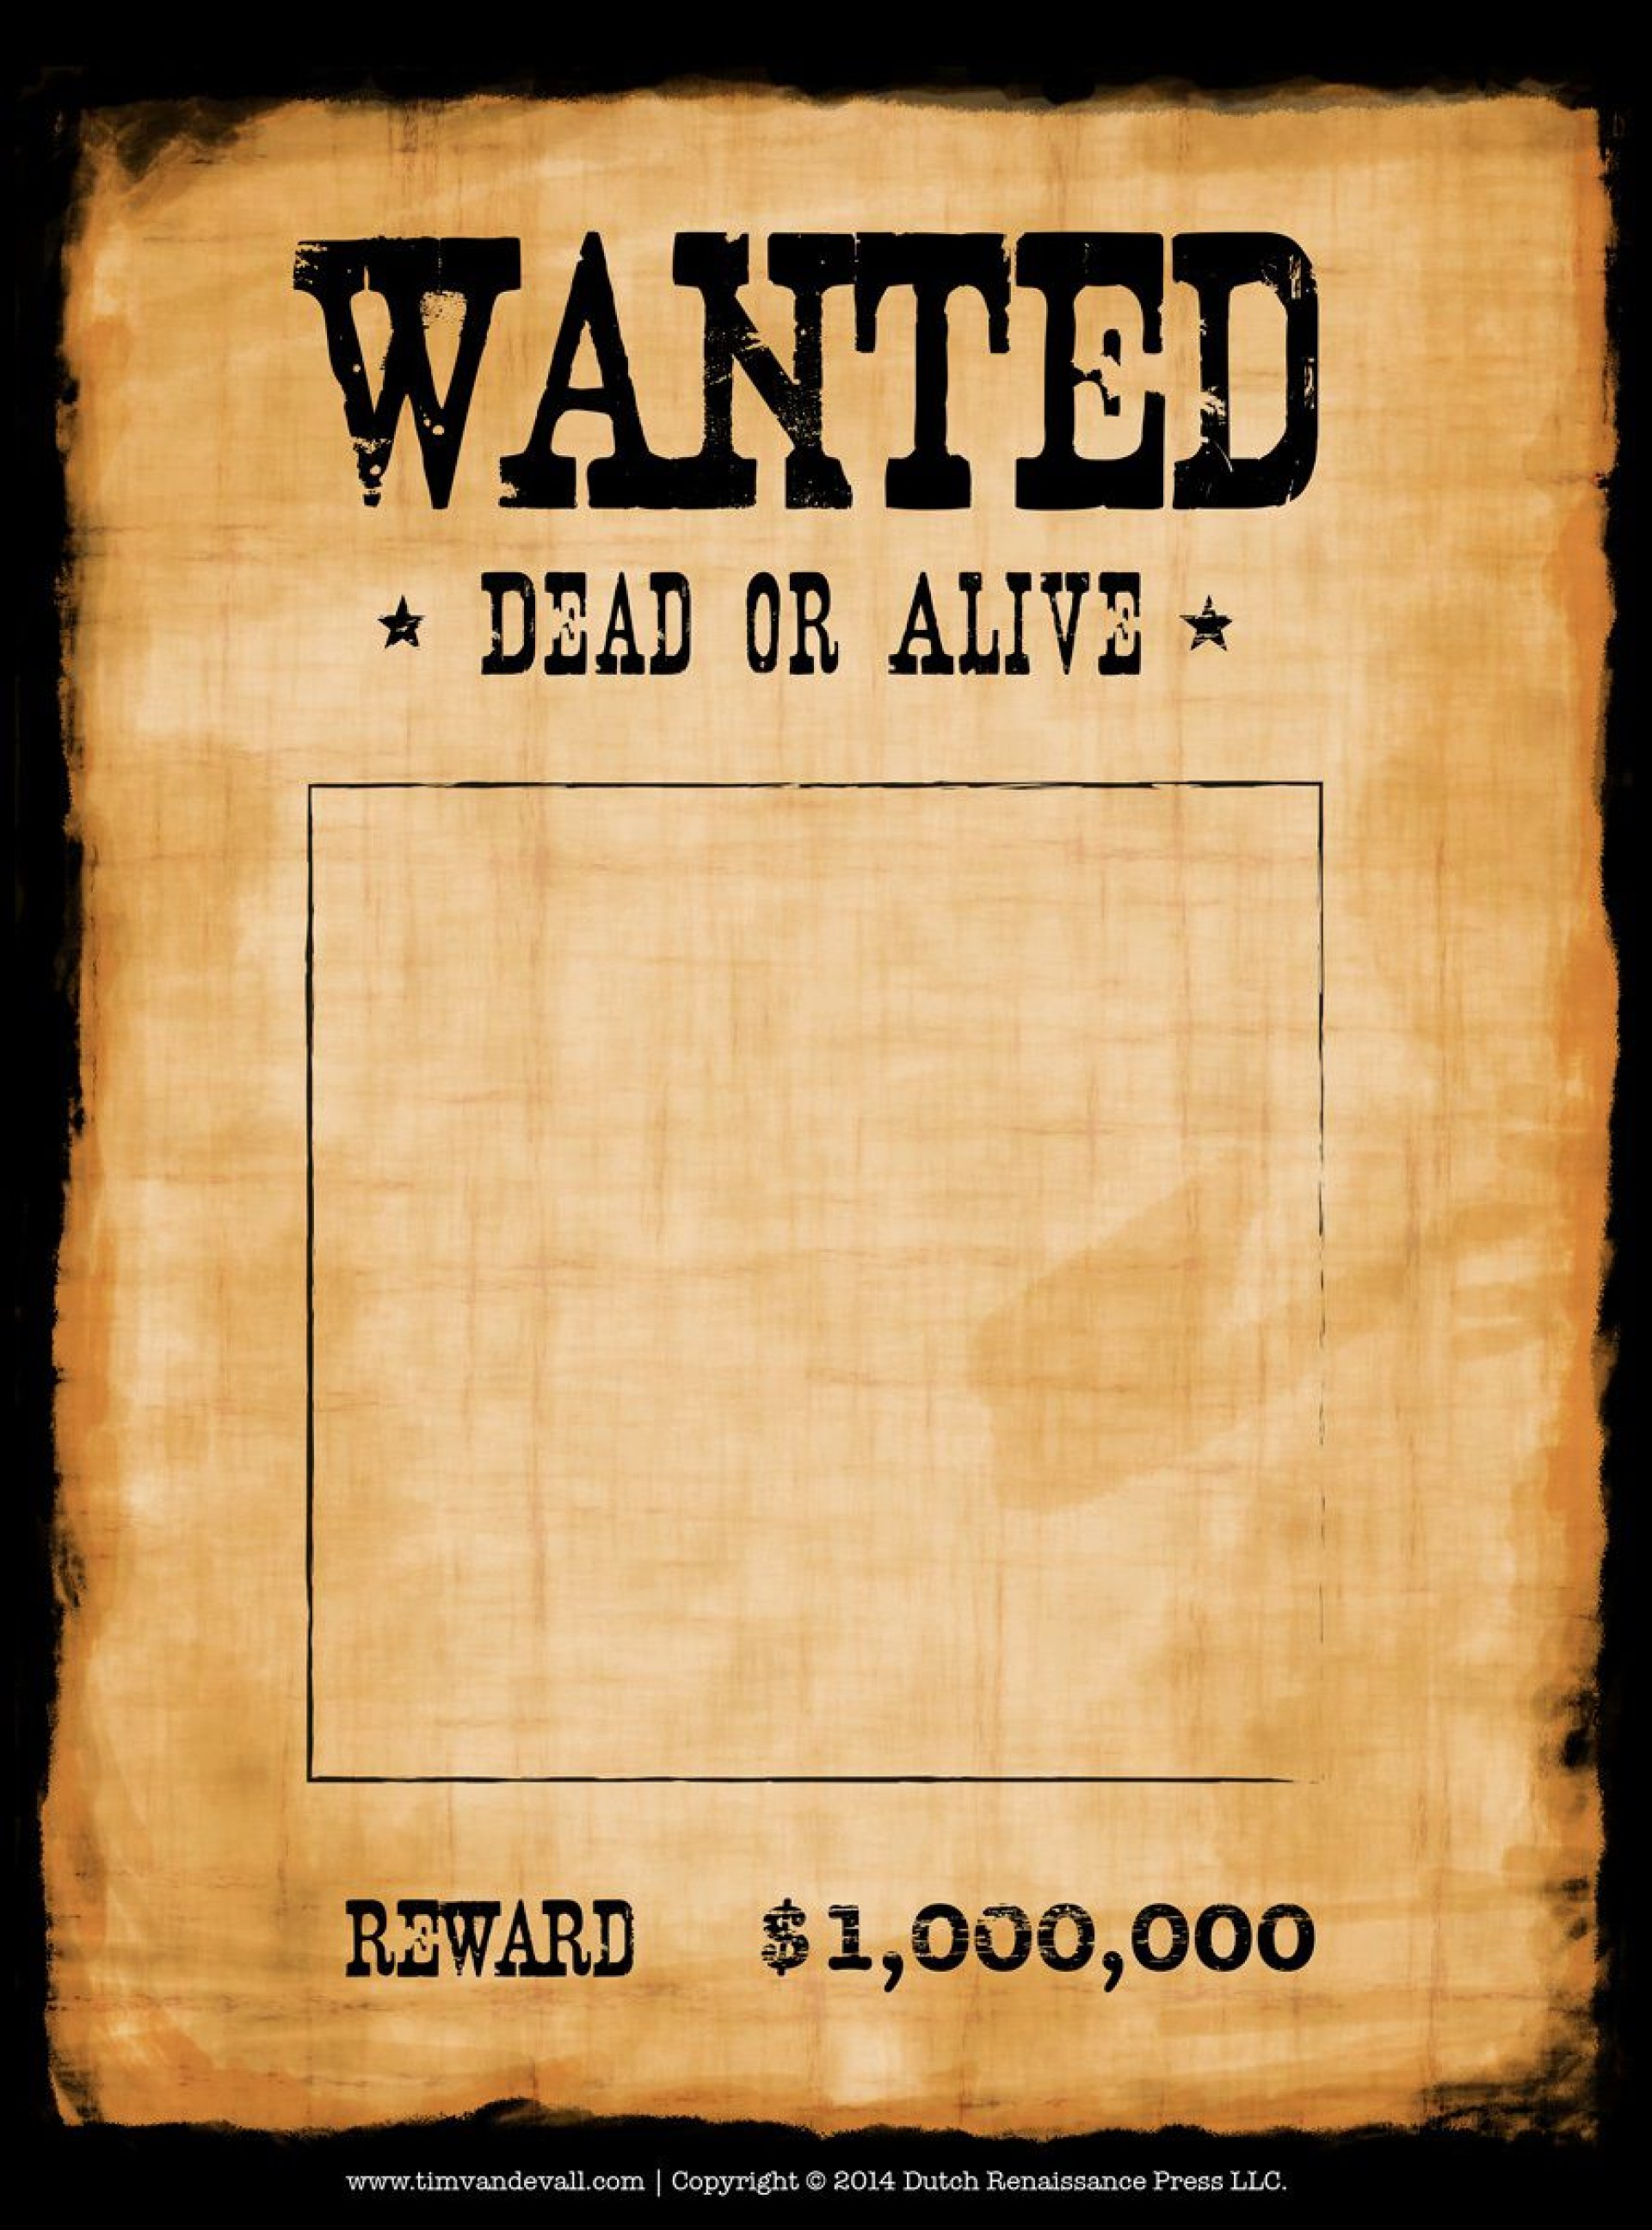 005 Stirring Wanted Poster Template Microsoft Word High Definition  Western Most1920